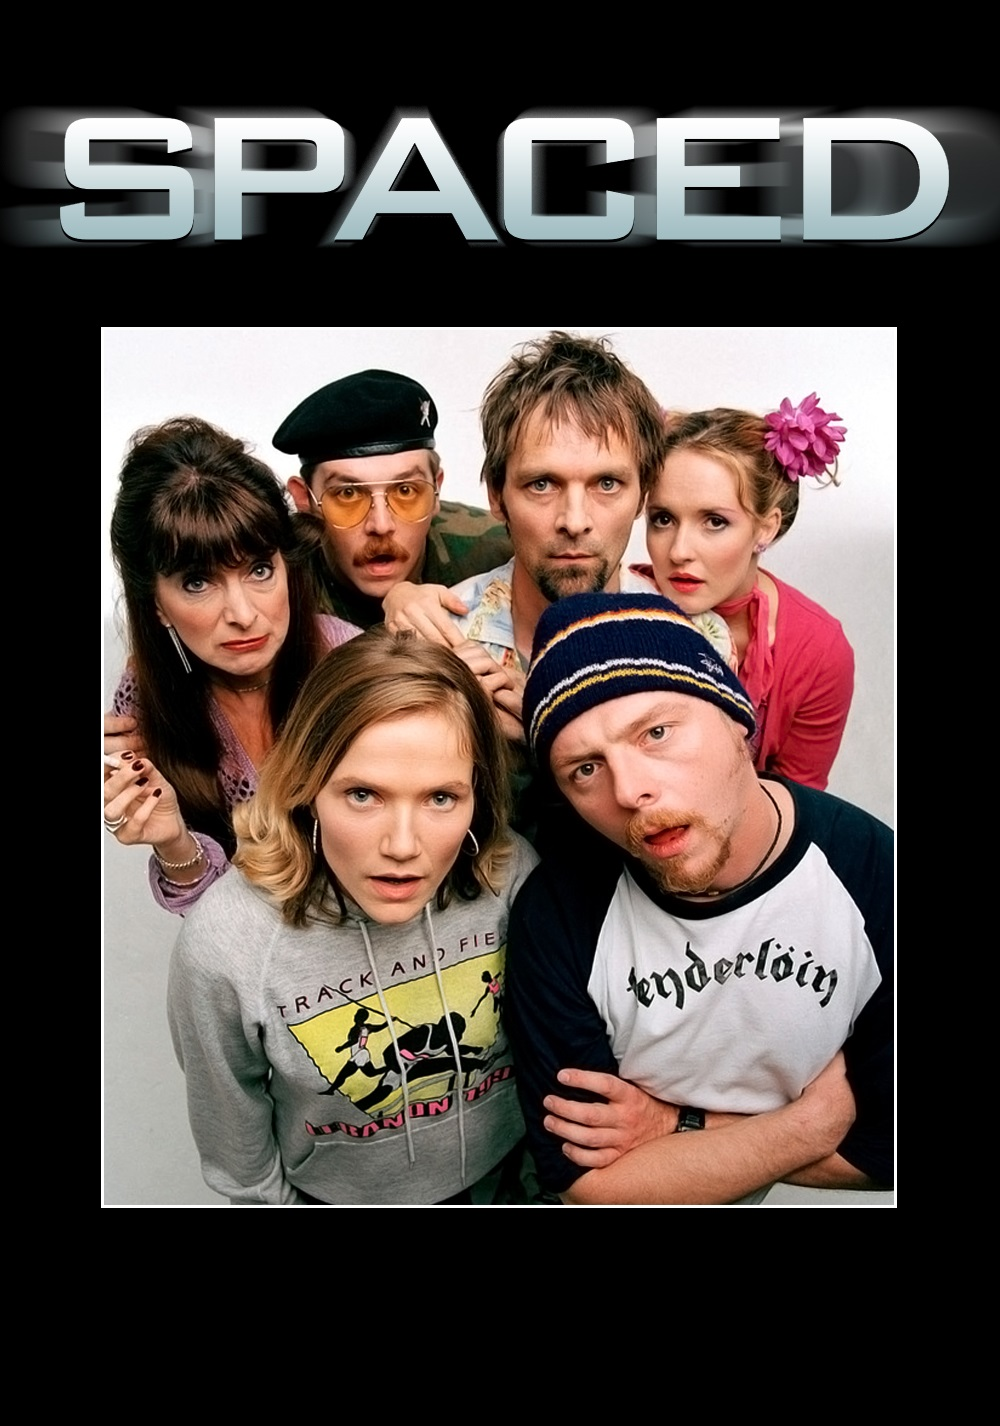 Spaced (TV Series 1999–2001) - IMDb